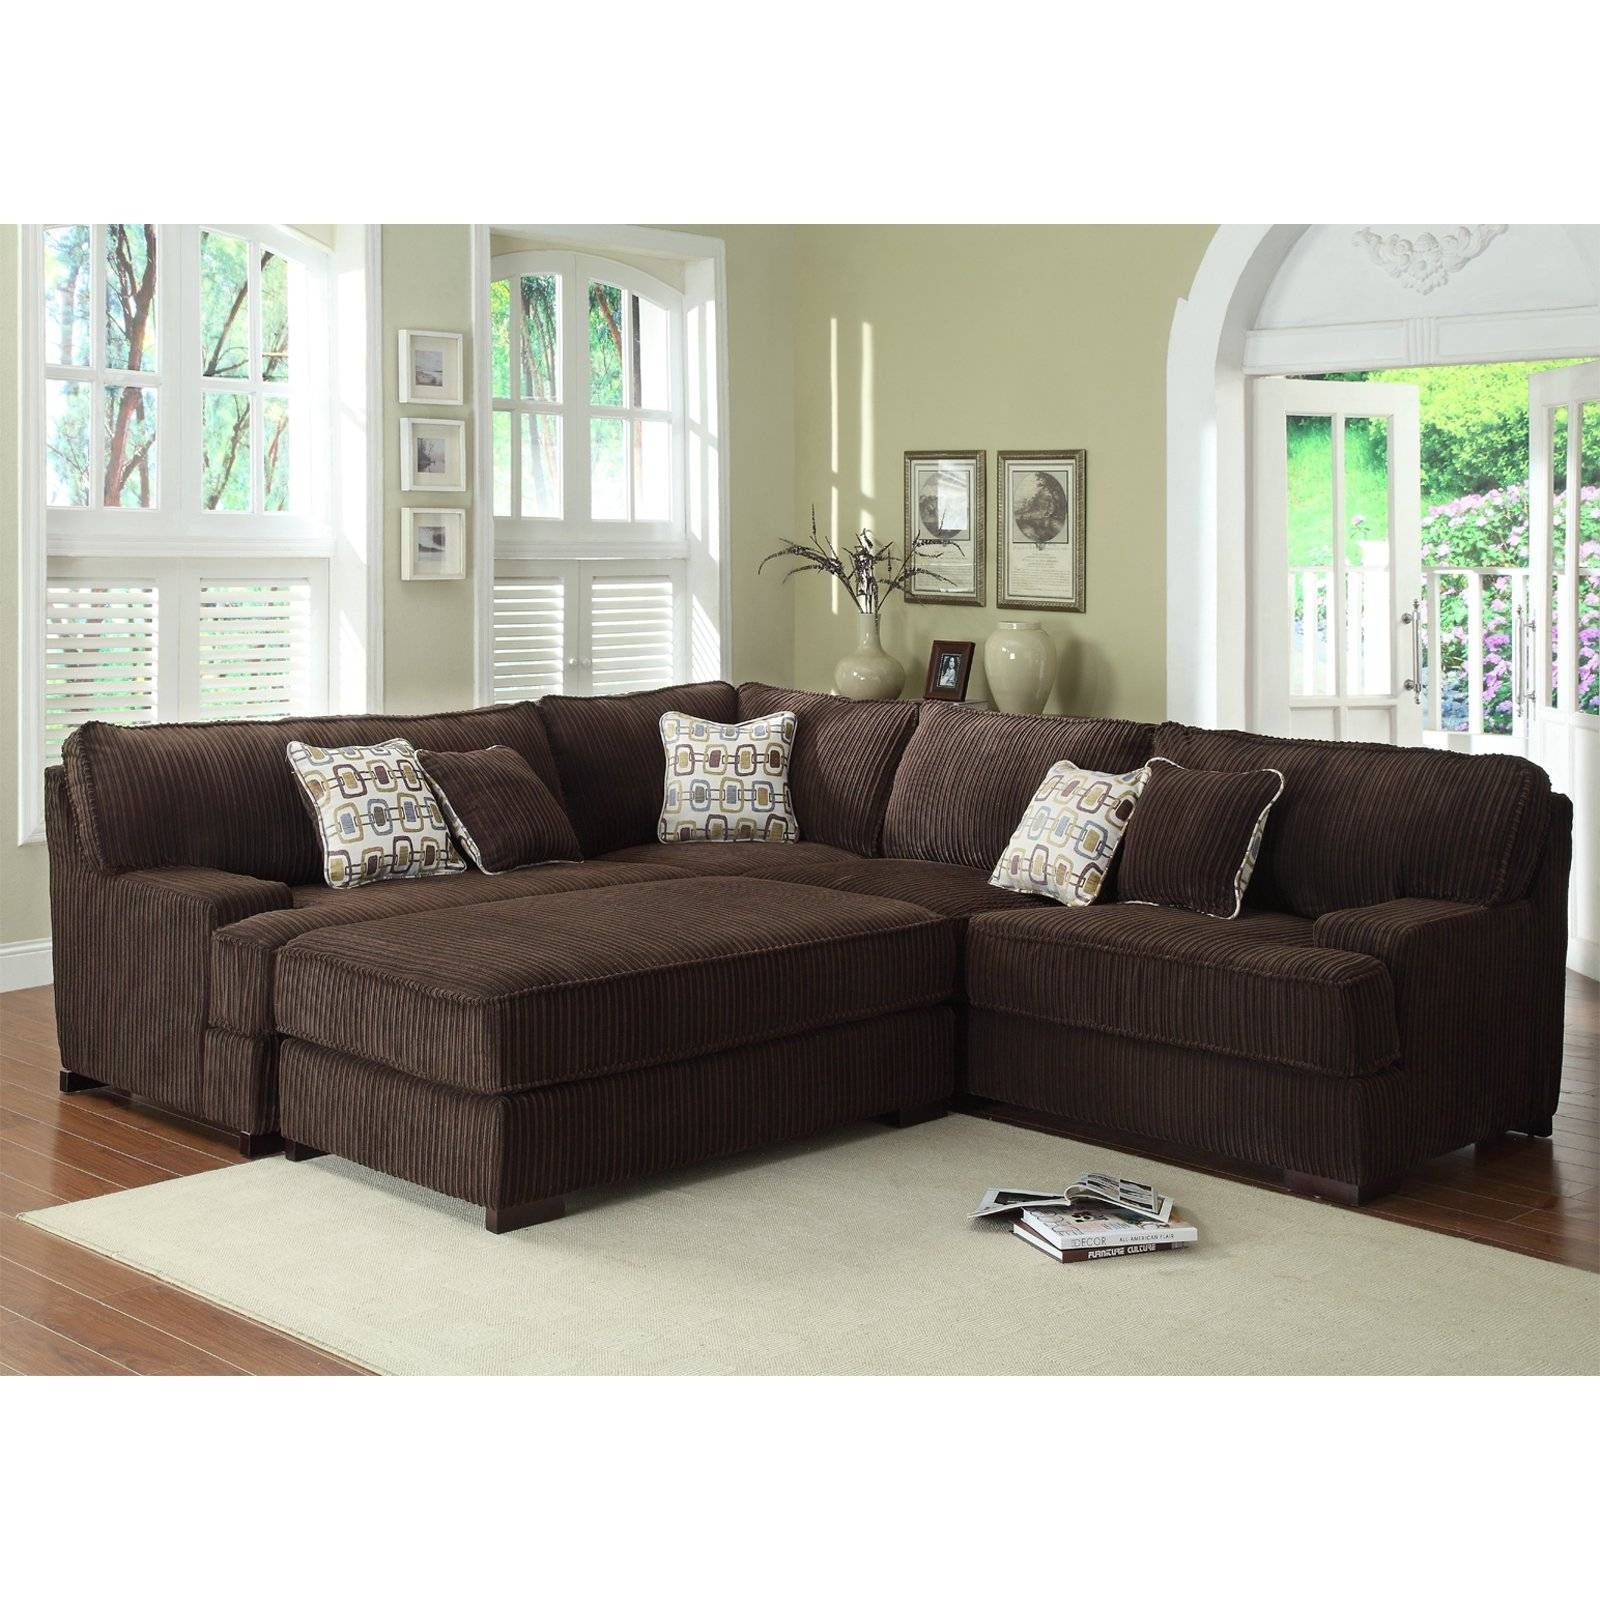 25 Best Ideas About U Shaped Sofa On Pinterest U Shaped Couch 10 pertaining to 10 Foot Sectional Sofa (Image 11 of 30)